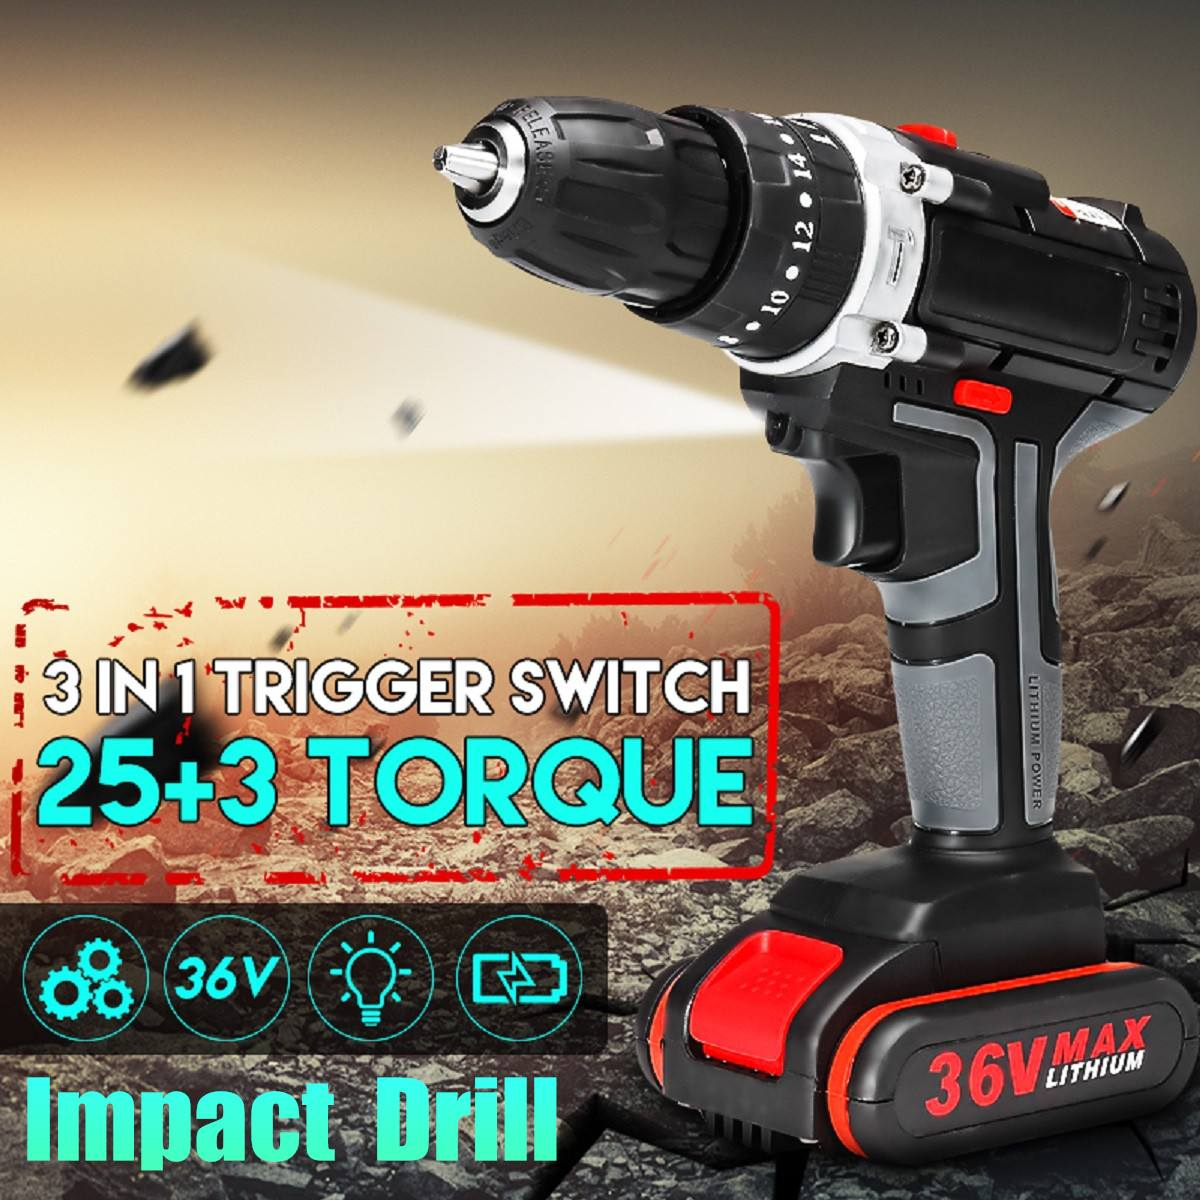 36V Electric Impact Drill DIY Home Decor Electric Screwdriver Wireless Electric Cordless Drill 1/2 Li-ion Battery Power Tools36V Electric Impact Drill DIY Home Decor Electric Screwdriver Wireless Electric Cordless Drill 1/2 Li-ion Battery Power Tools